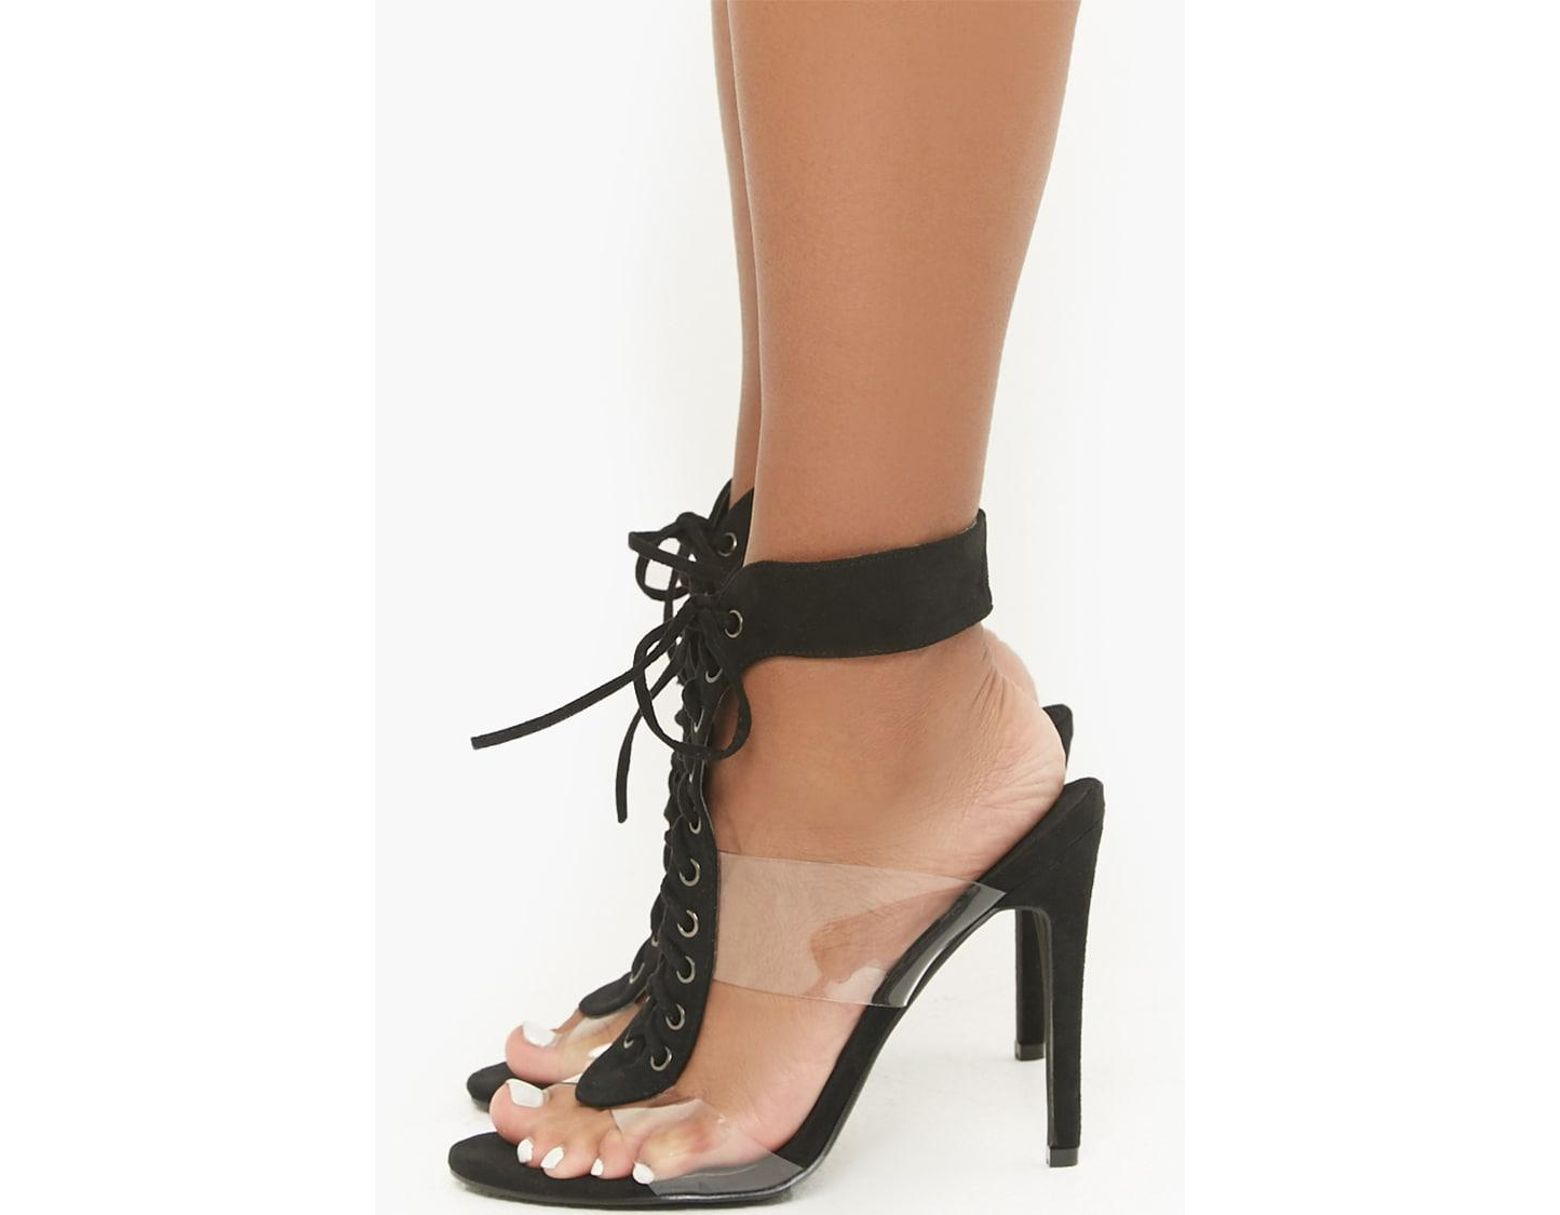 8c7c829139b26 Forever 21 Translucent Contrast Lace-up Heels , Black in Black - Lyst